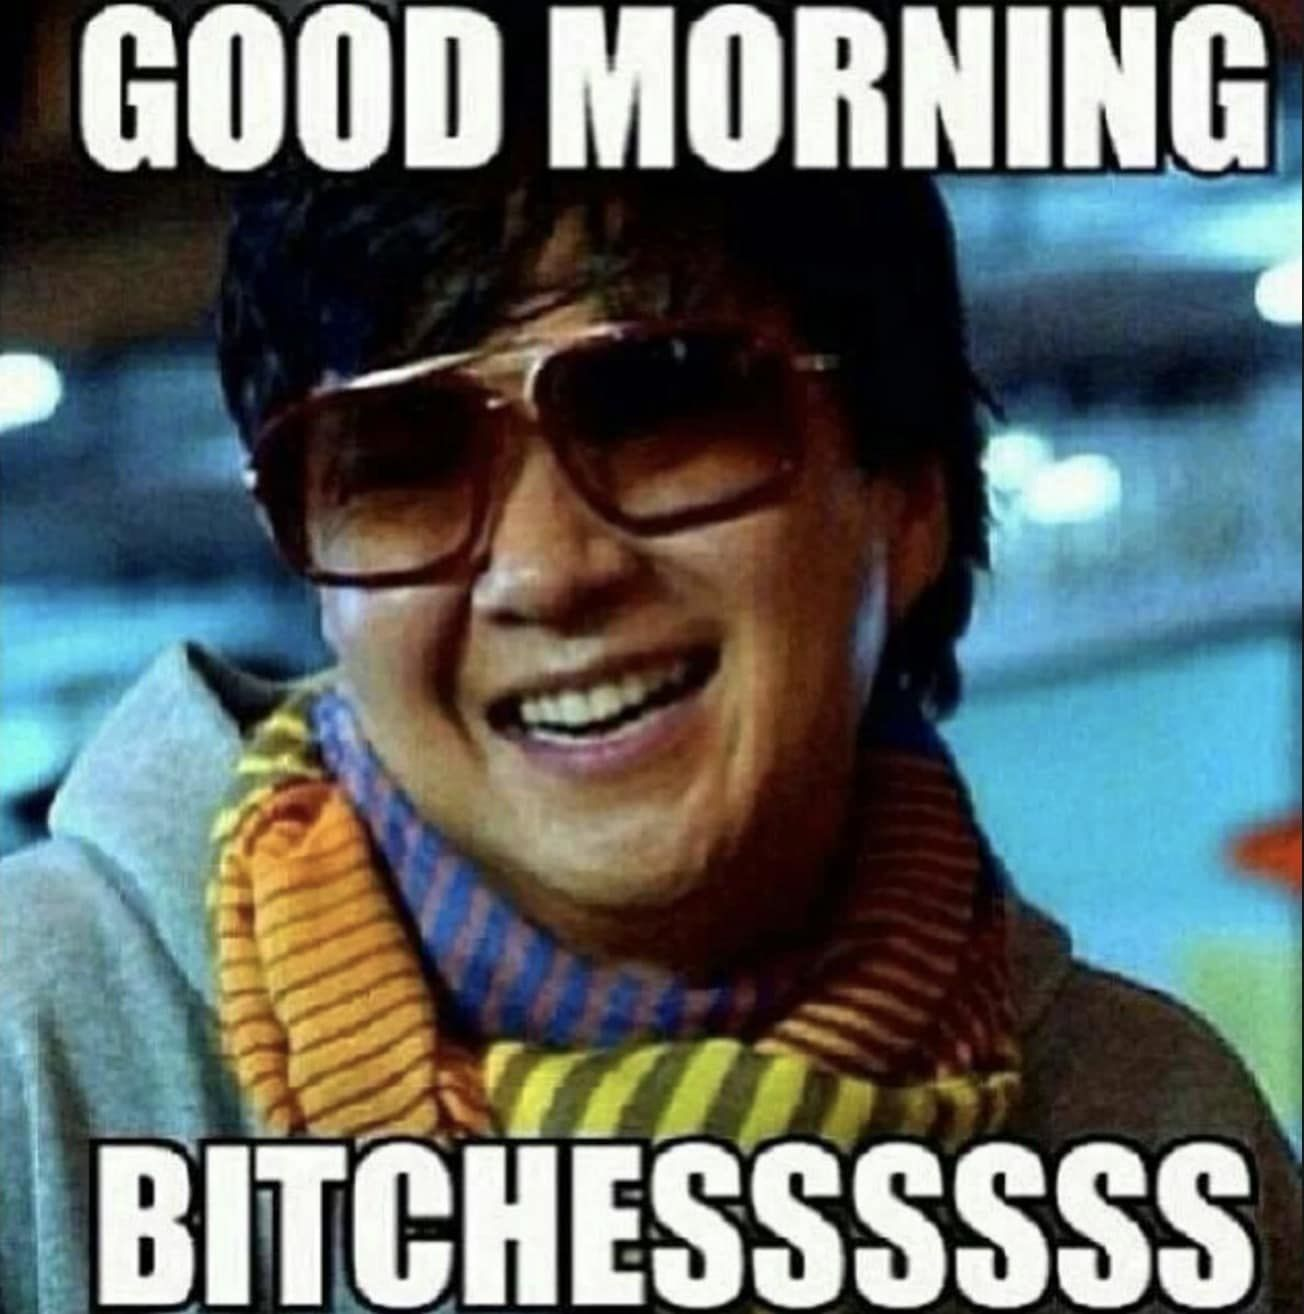 Funny Good Morning Memes Start Your Day With A Smile Funny Good Morning Memes Morning Humor Morning Memes